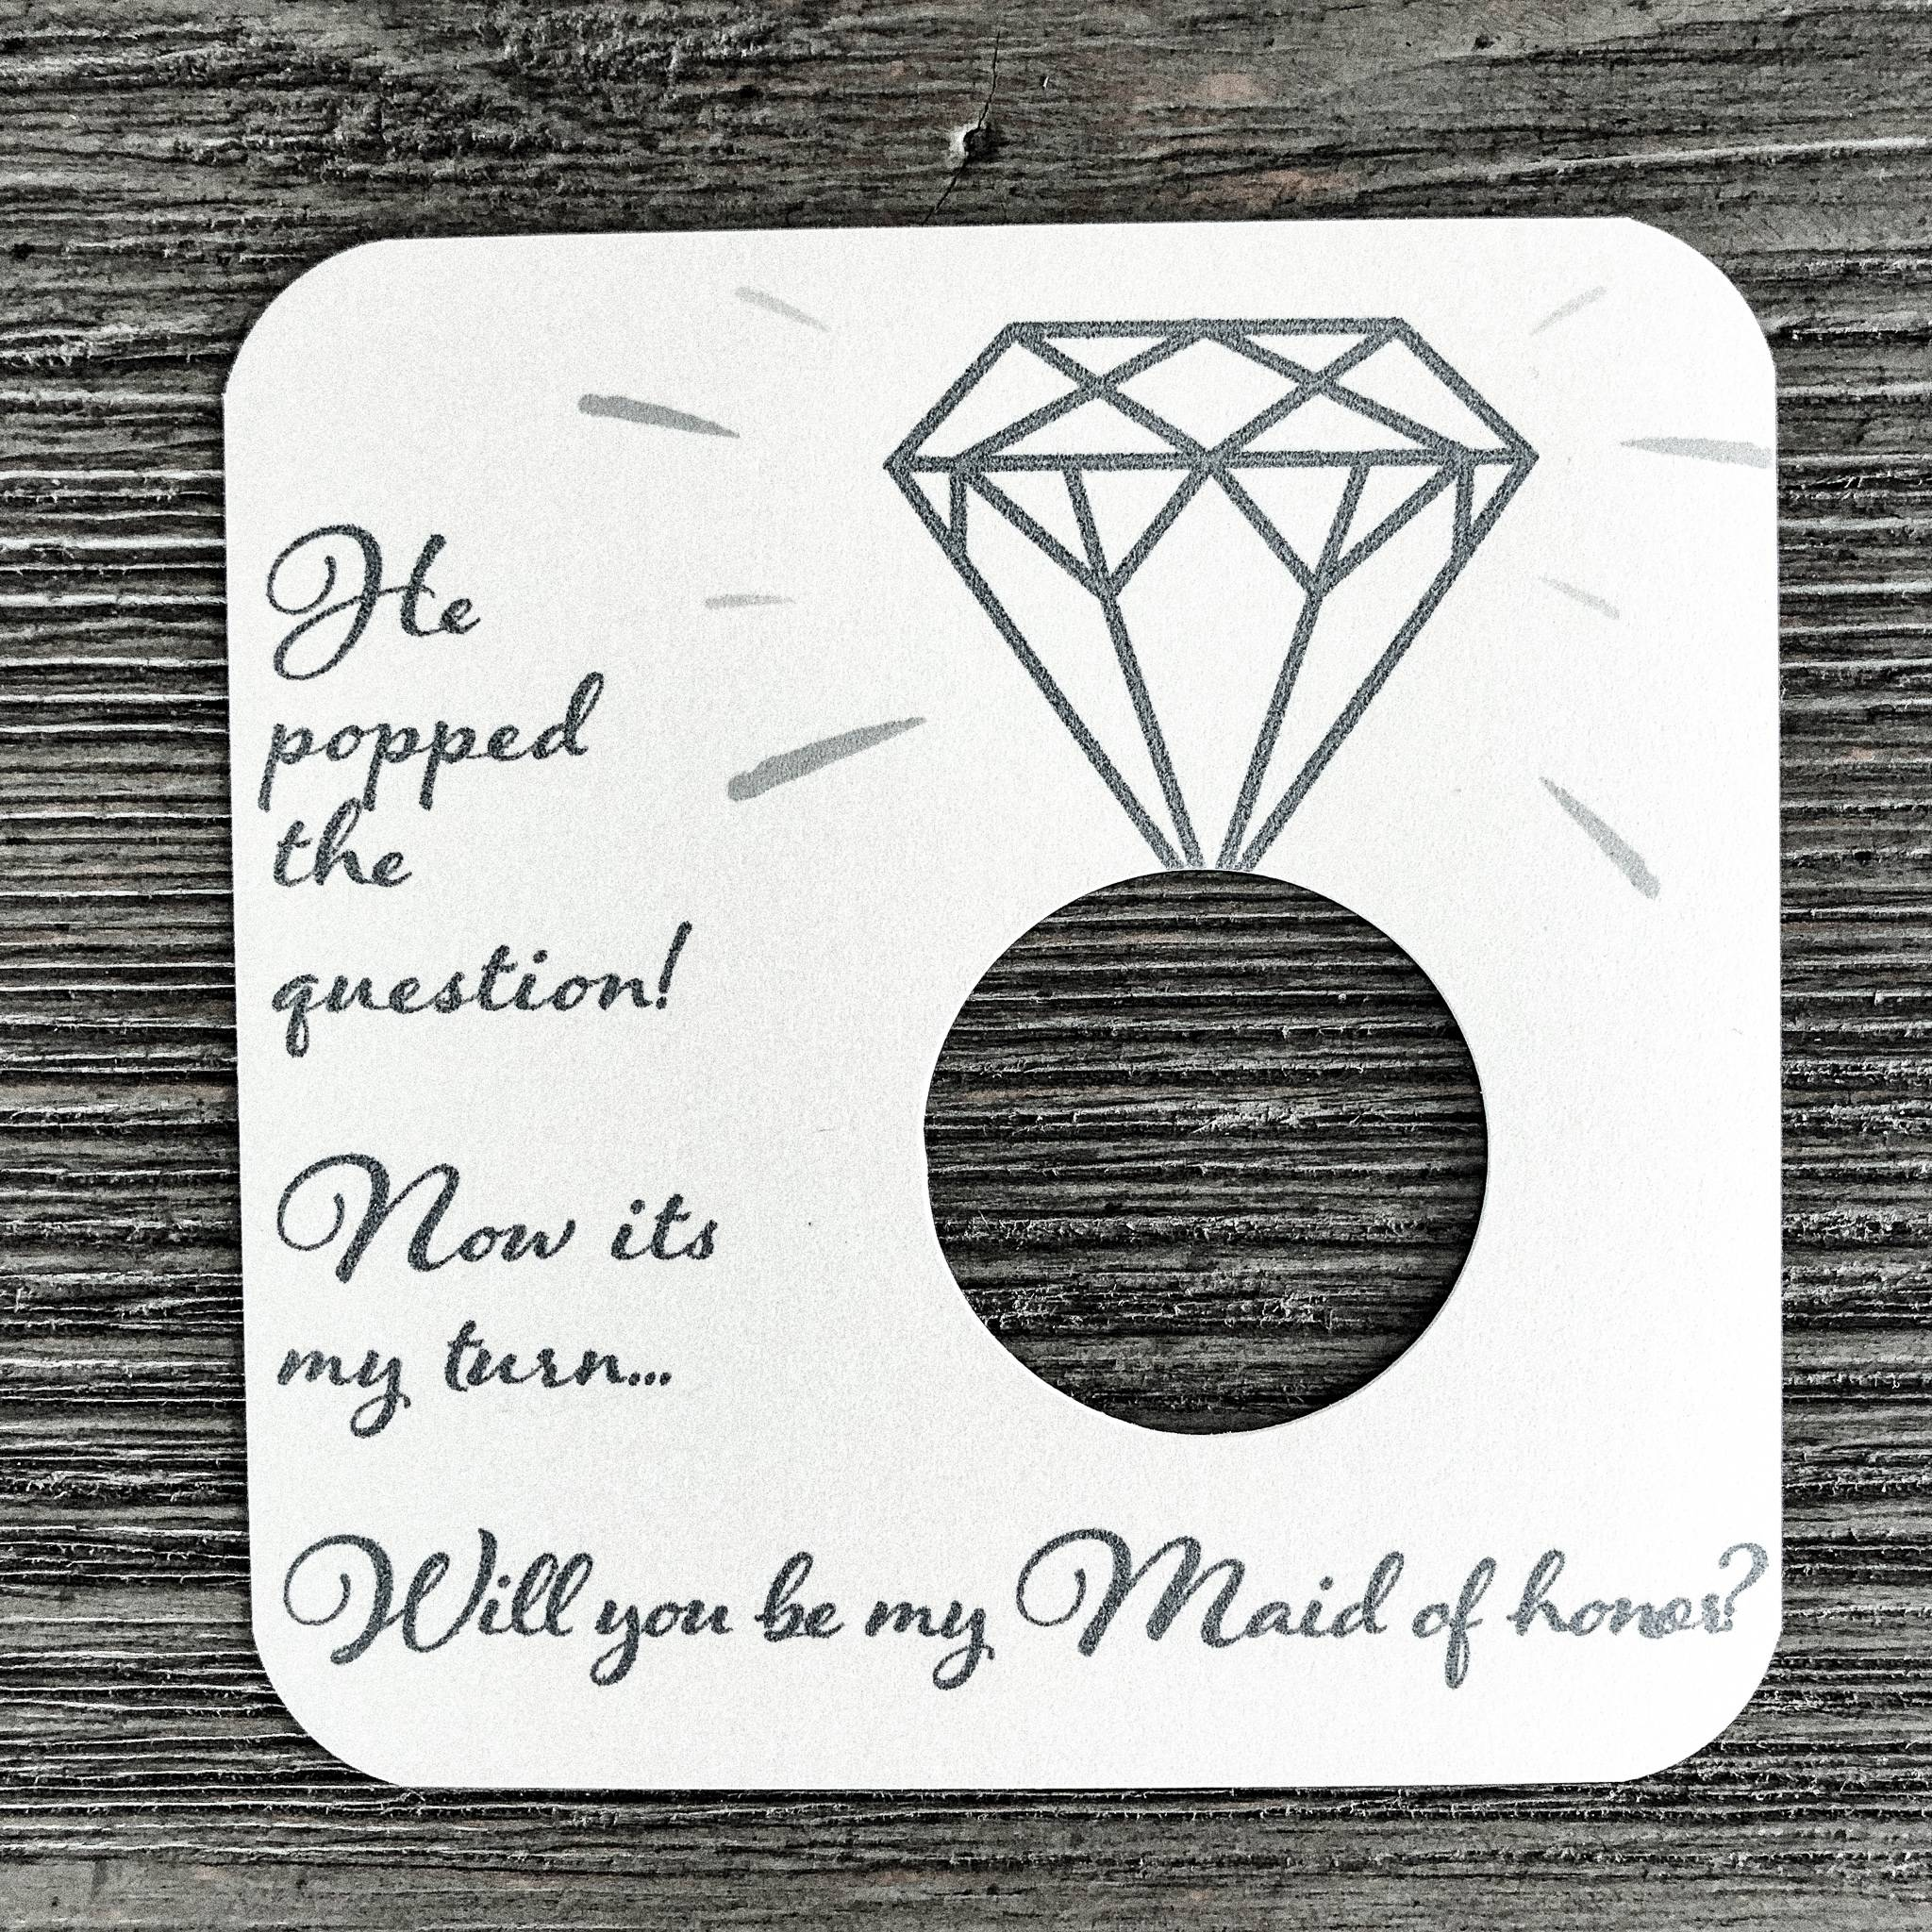 He popped the question! Now its my turn... Will you be my maid of honor? Shimmer champagne card stock.